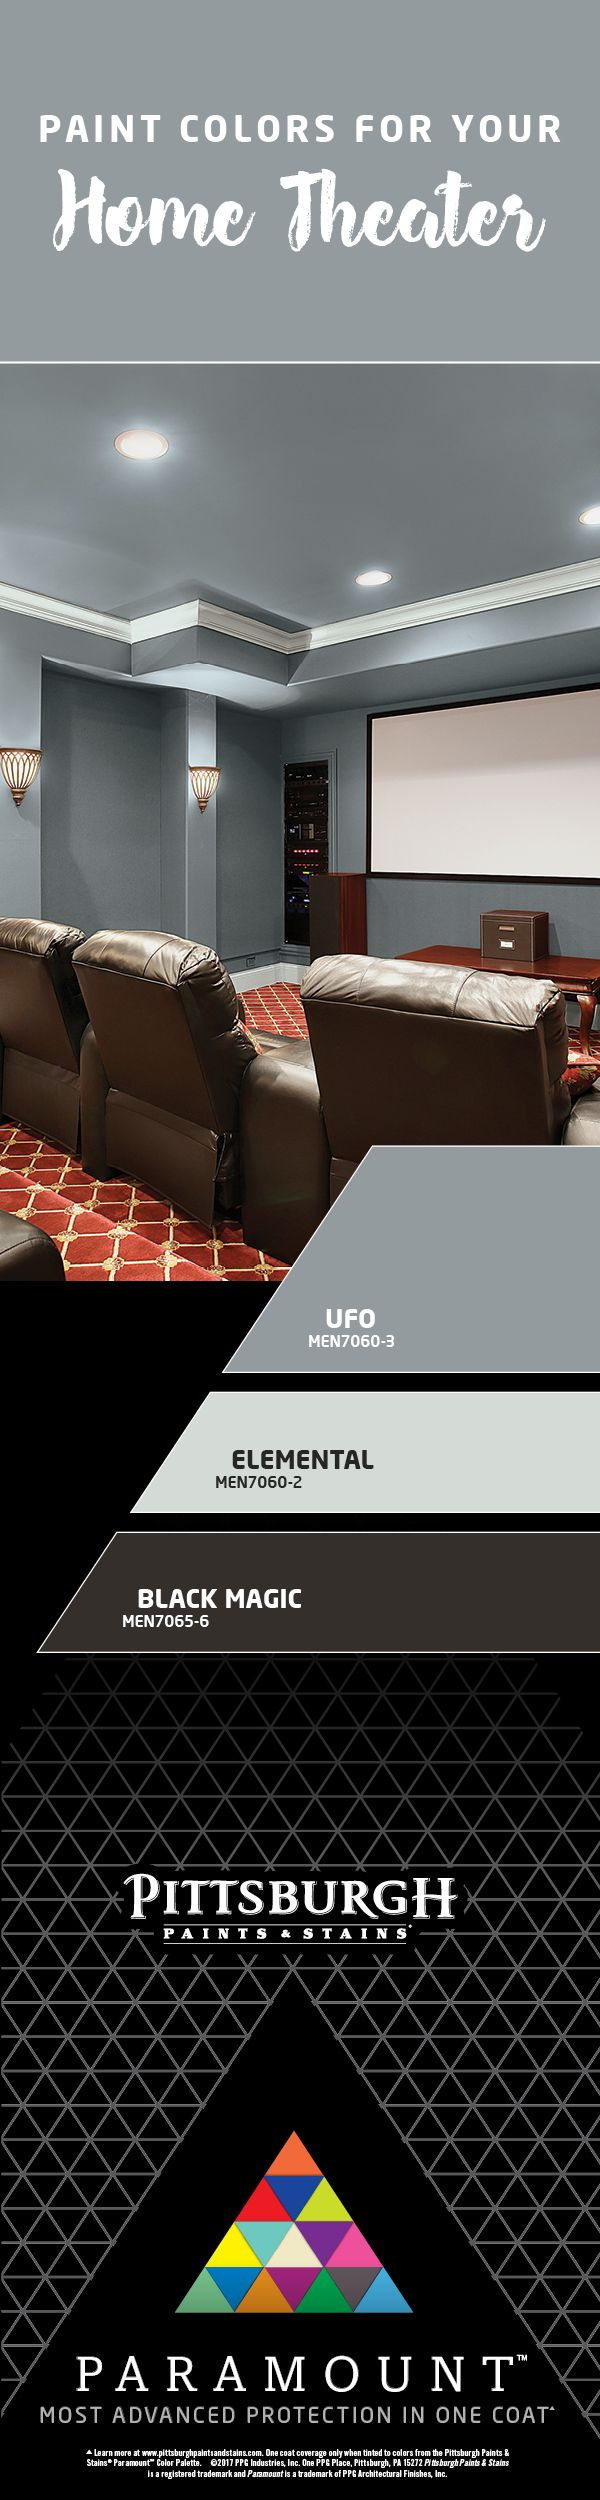 Elite home theater seating cuddle couch - Ultimate Home Theater Layer Dark Wall Colors To Create The Optimal Space For Watching Movies